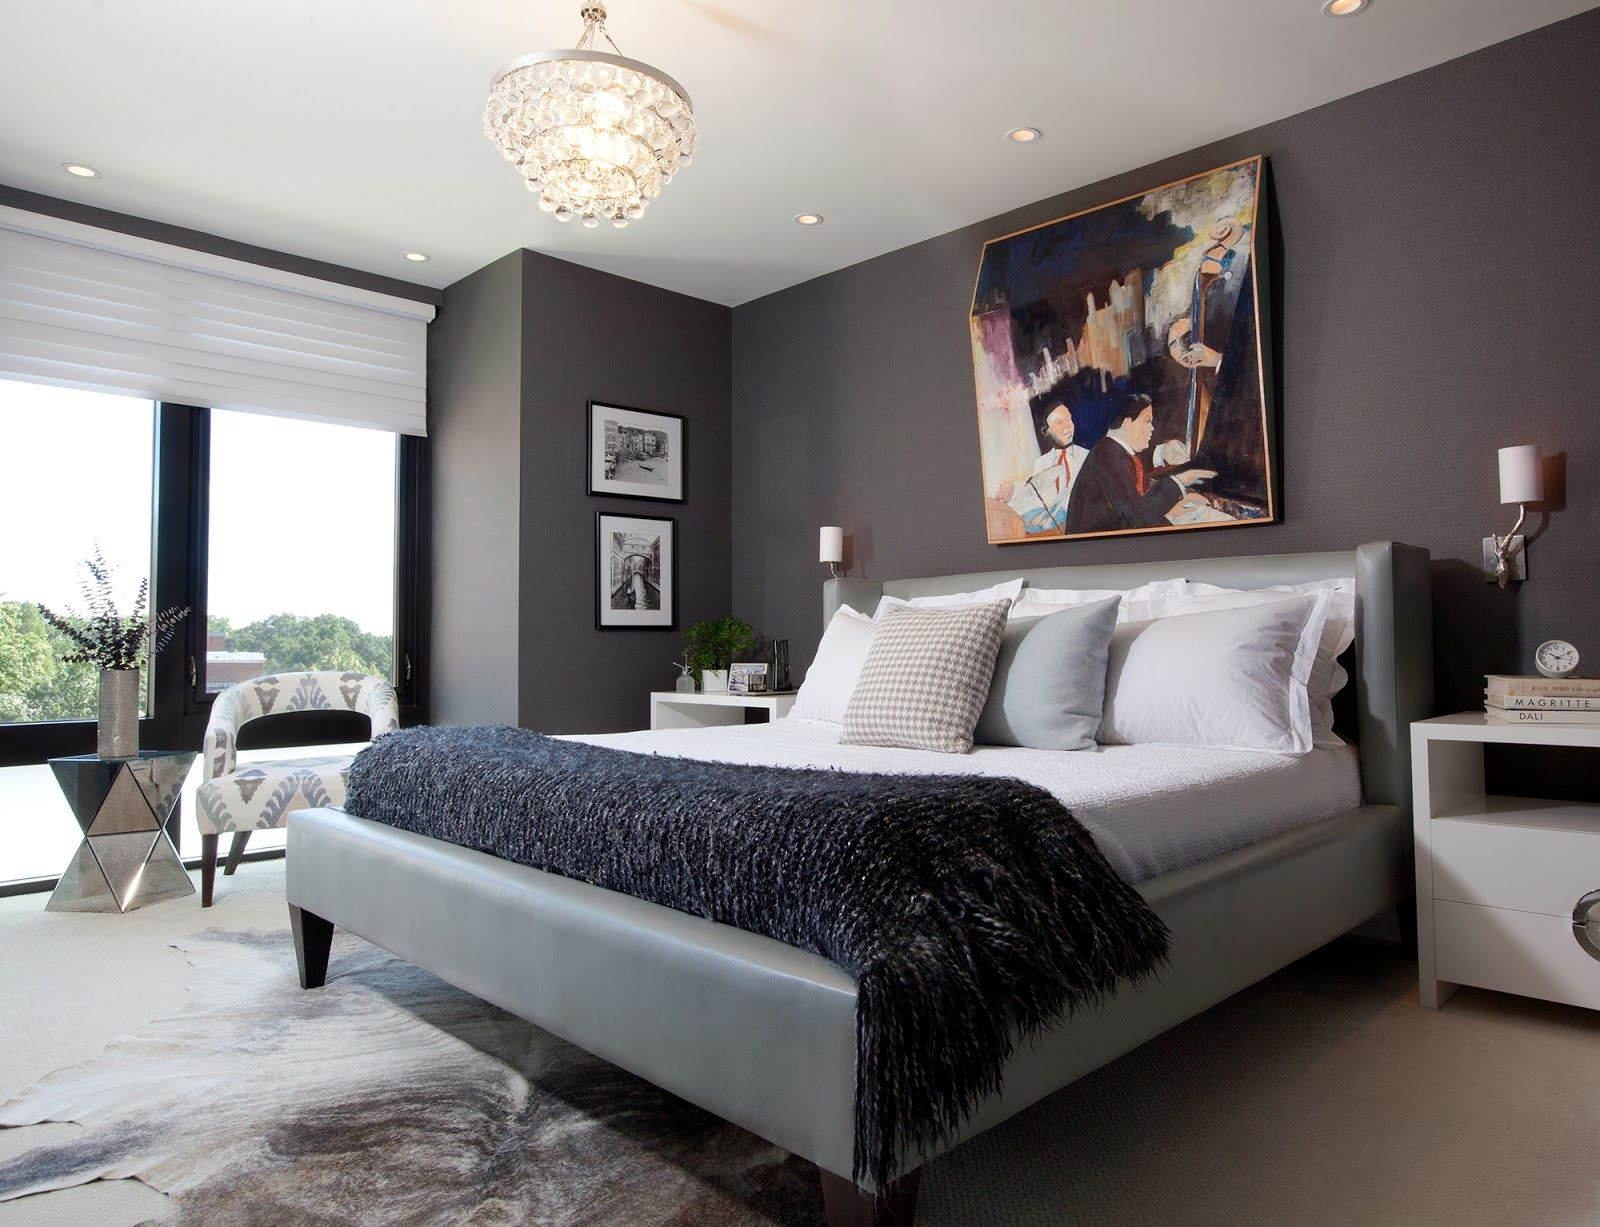 Marvelous bedroom with male bedroom ideas for your furniture bedroom